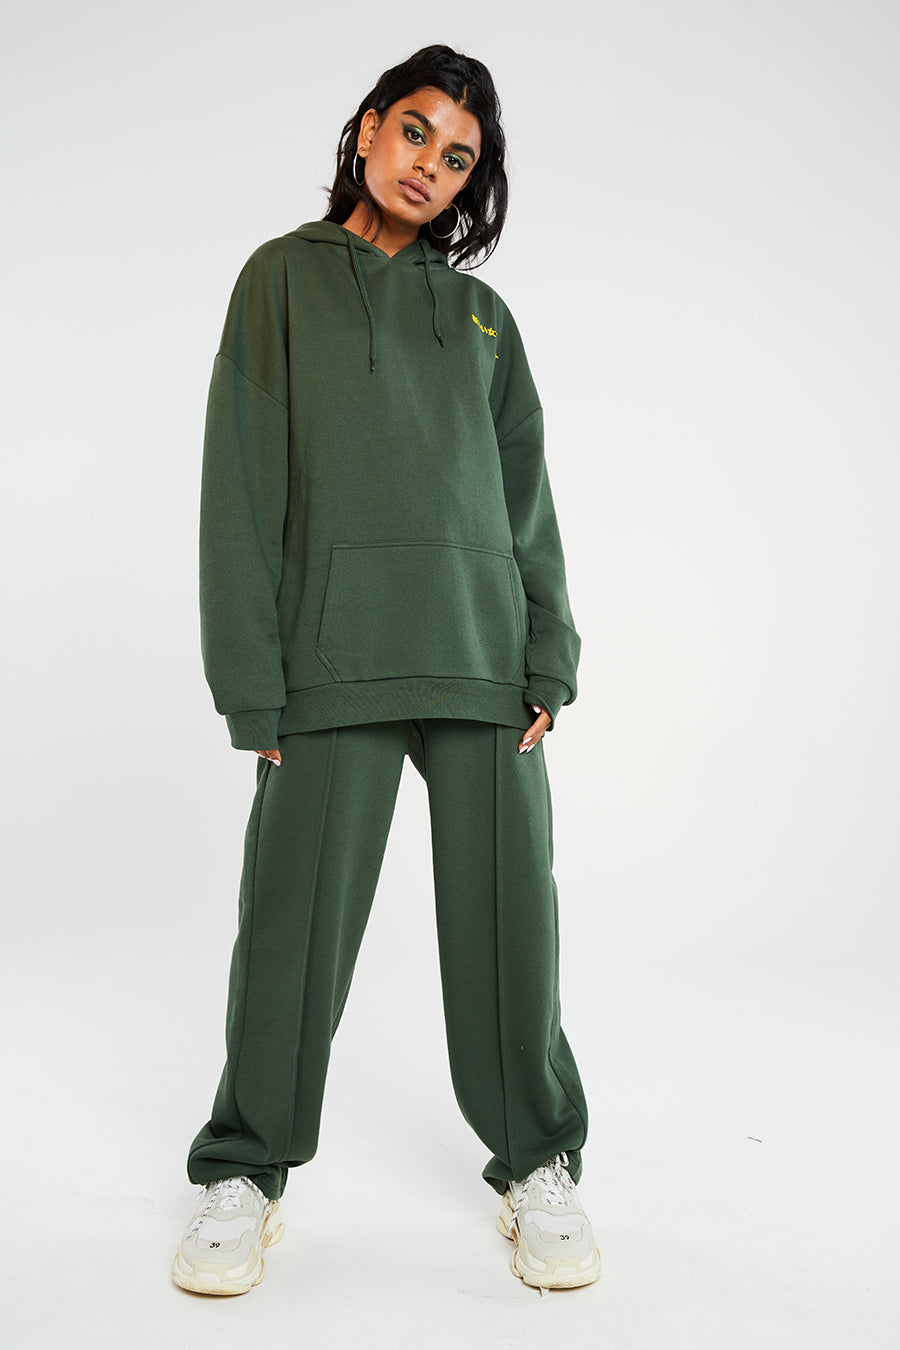 Green hoodie with embroidery